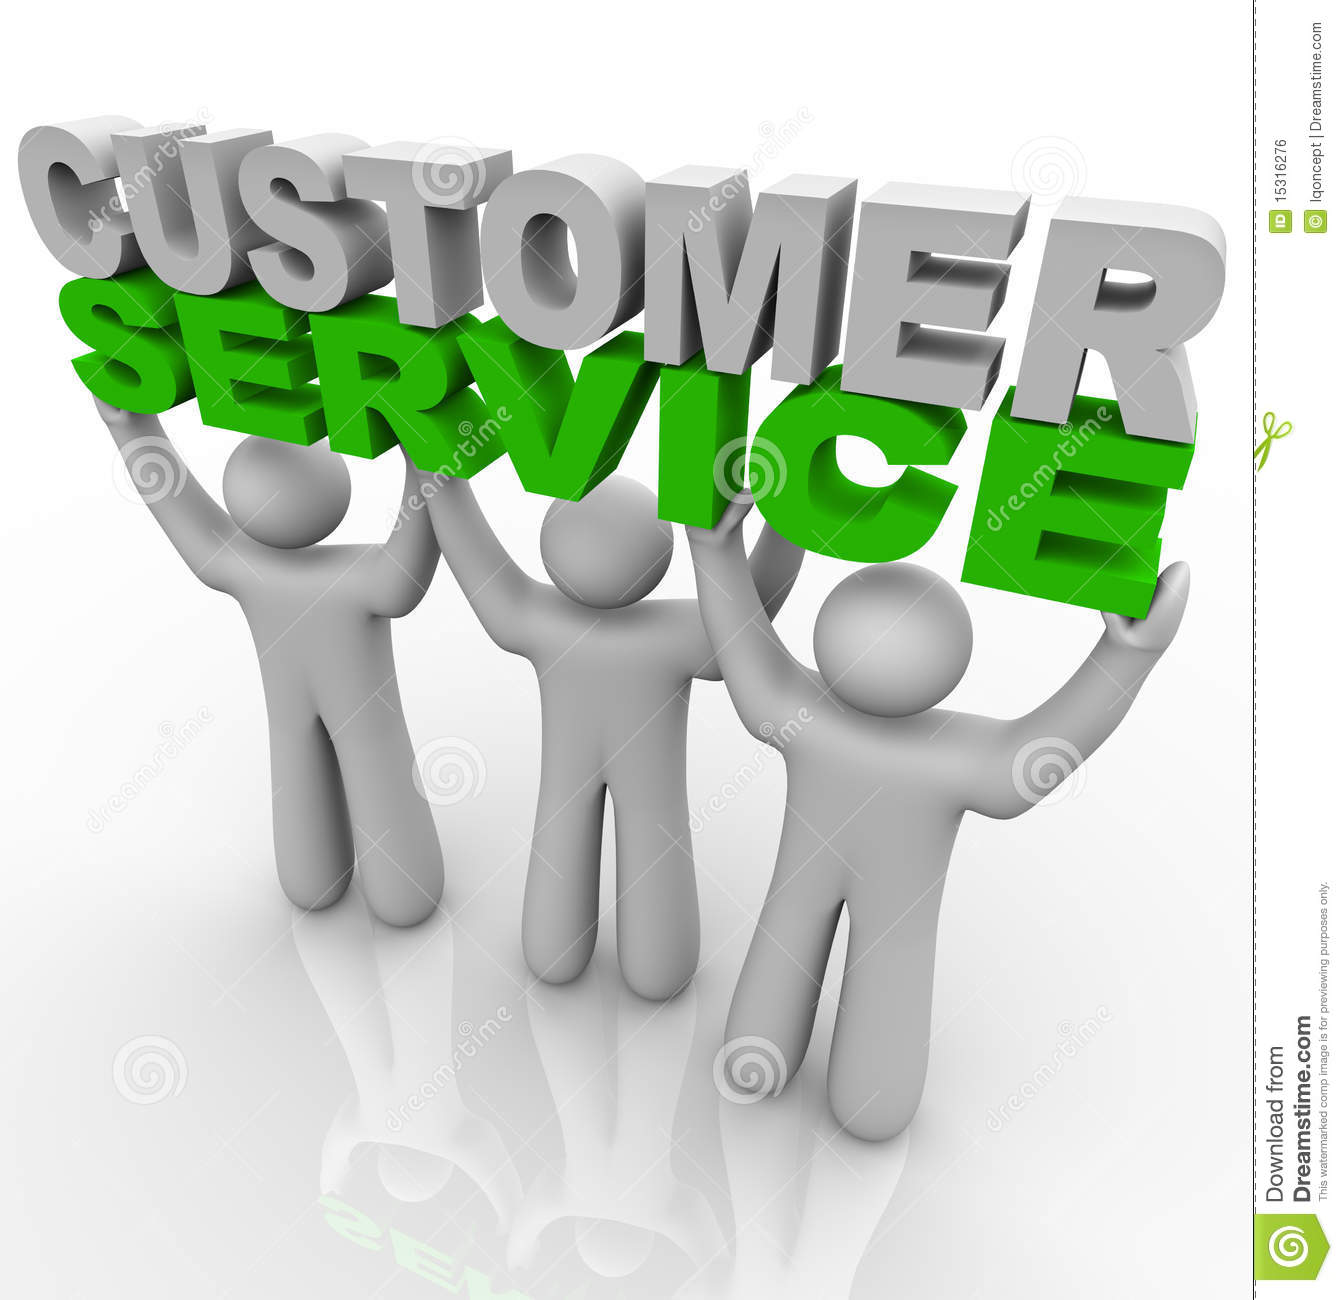 Customer Service - Lifting The Words Stock Illustration